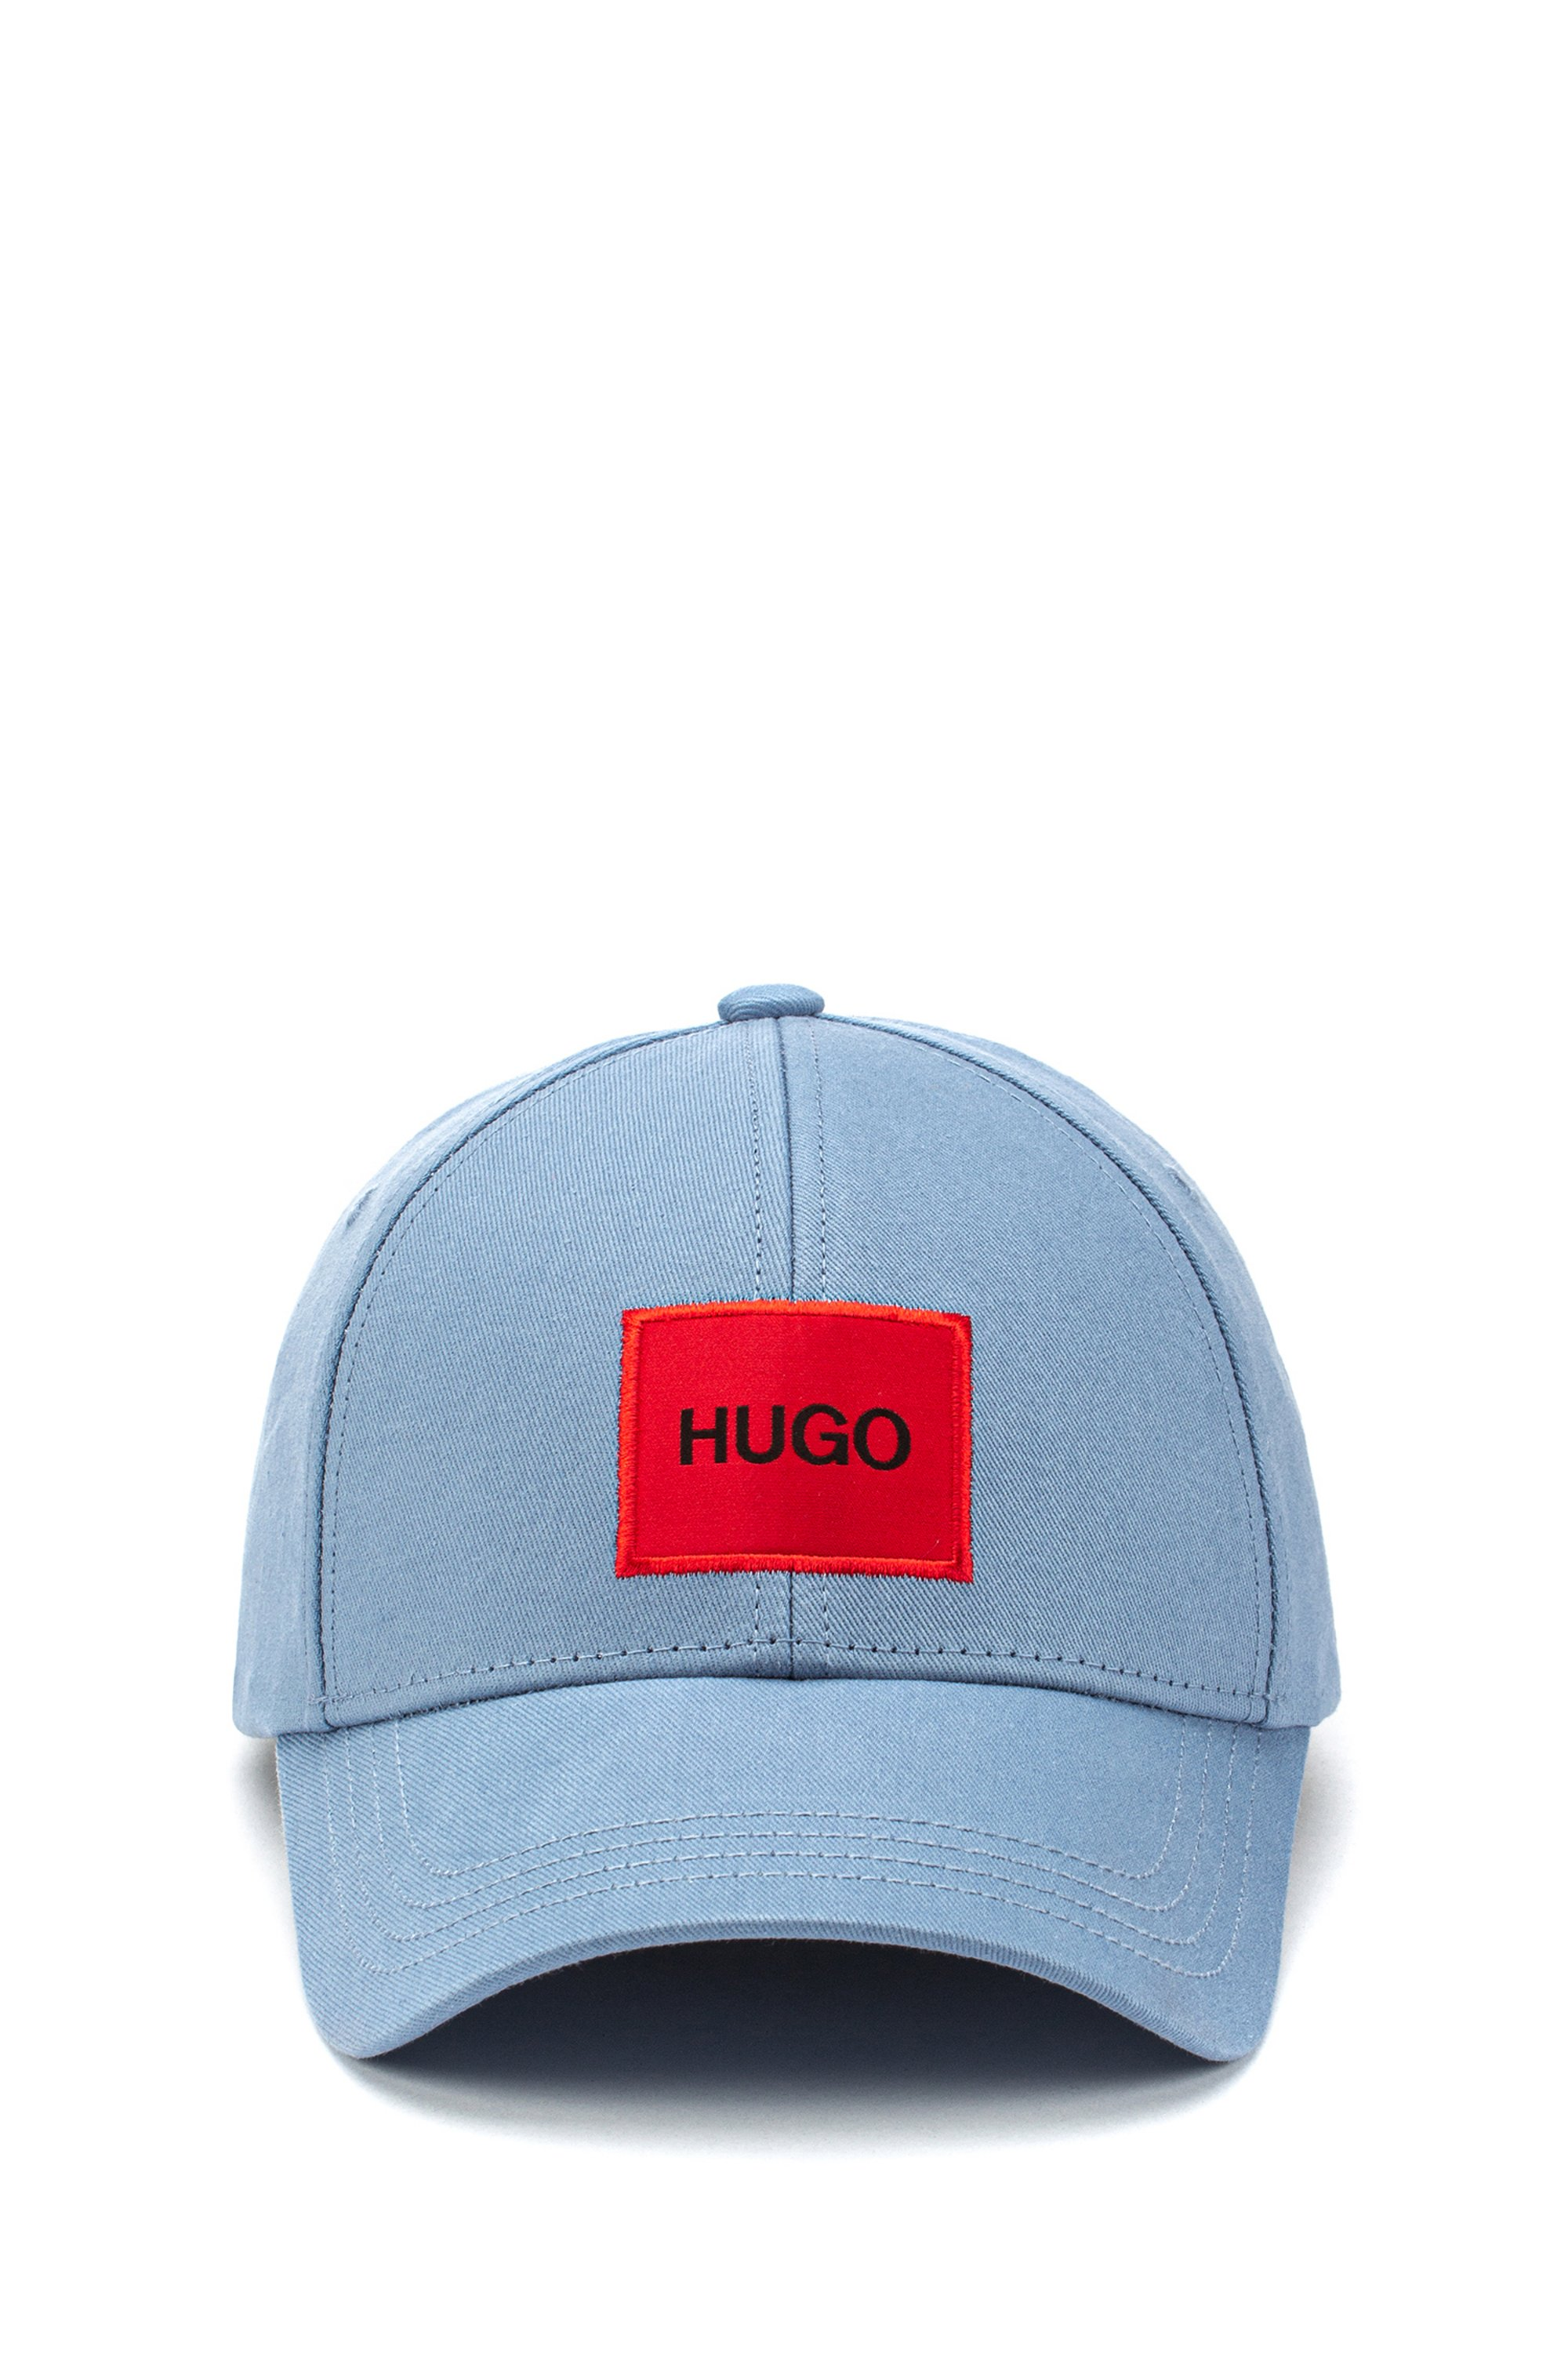 Cap in cotton twill with red logo label